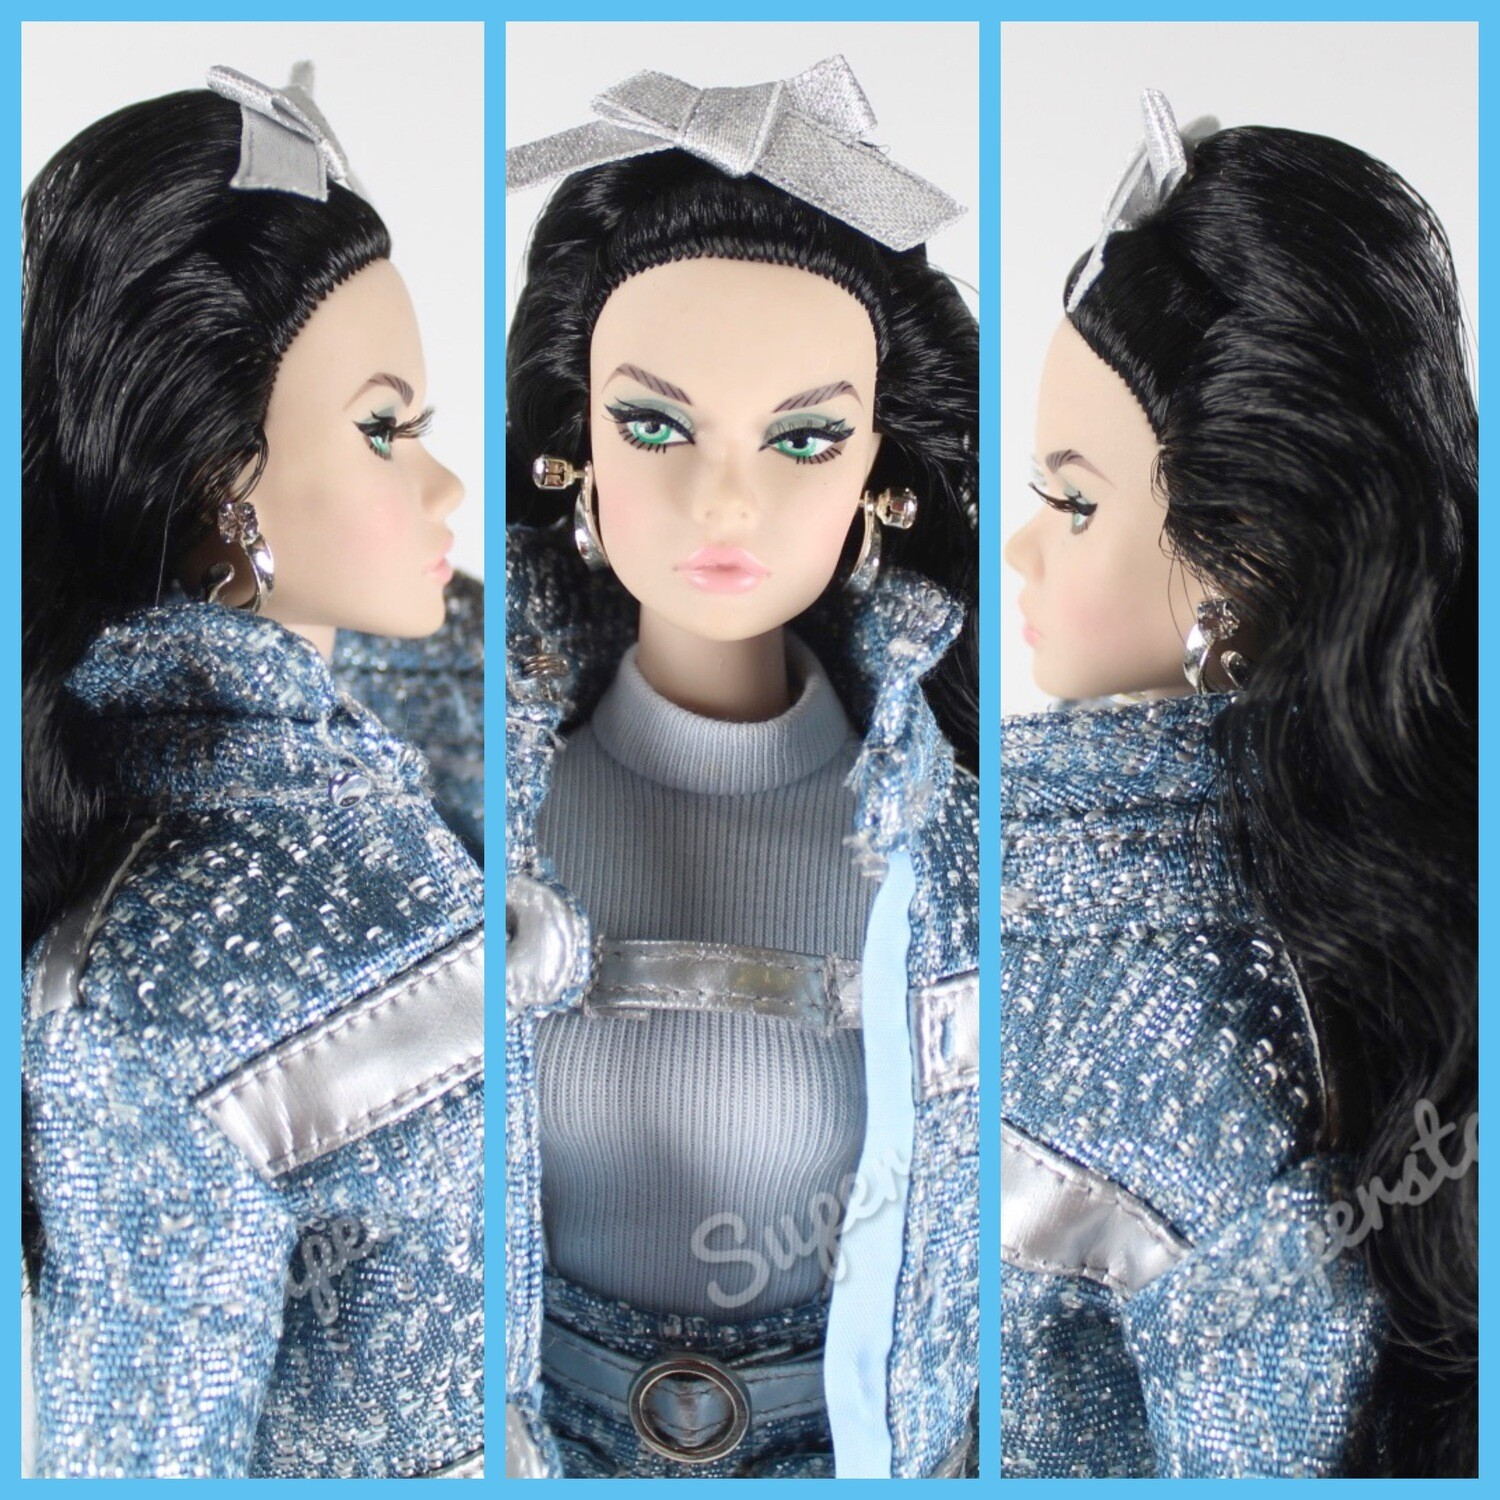 2018 Integrity Toys Luxe Life Convention : Chiller Thriller Poppy Parker DE-BOXED Dressed Doll